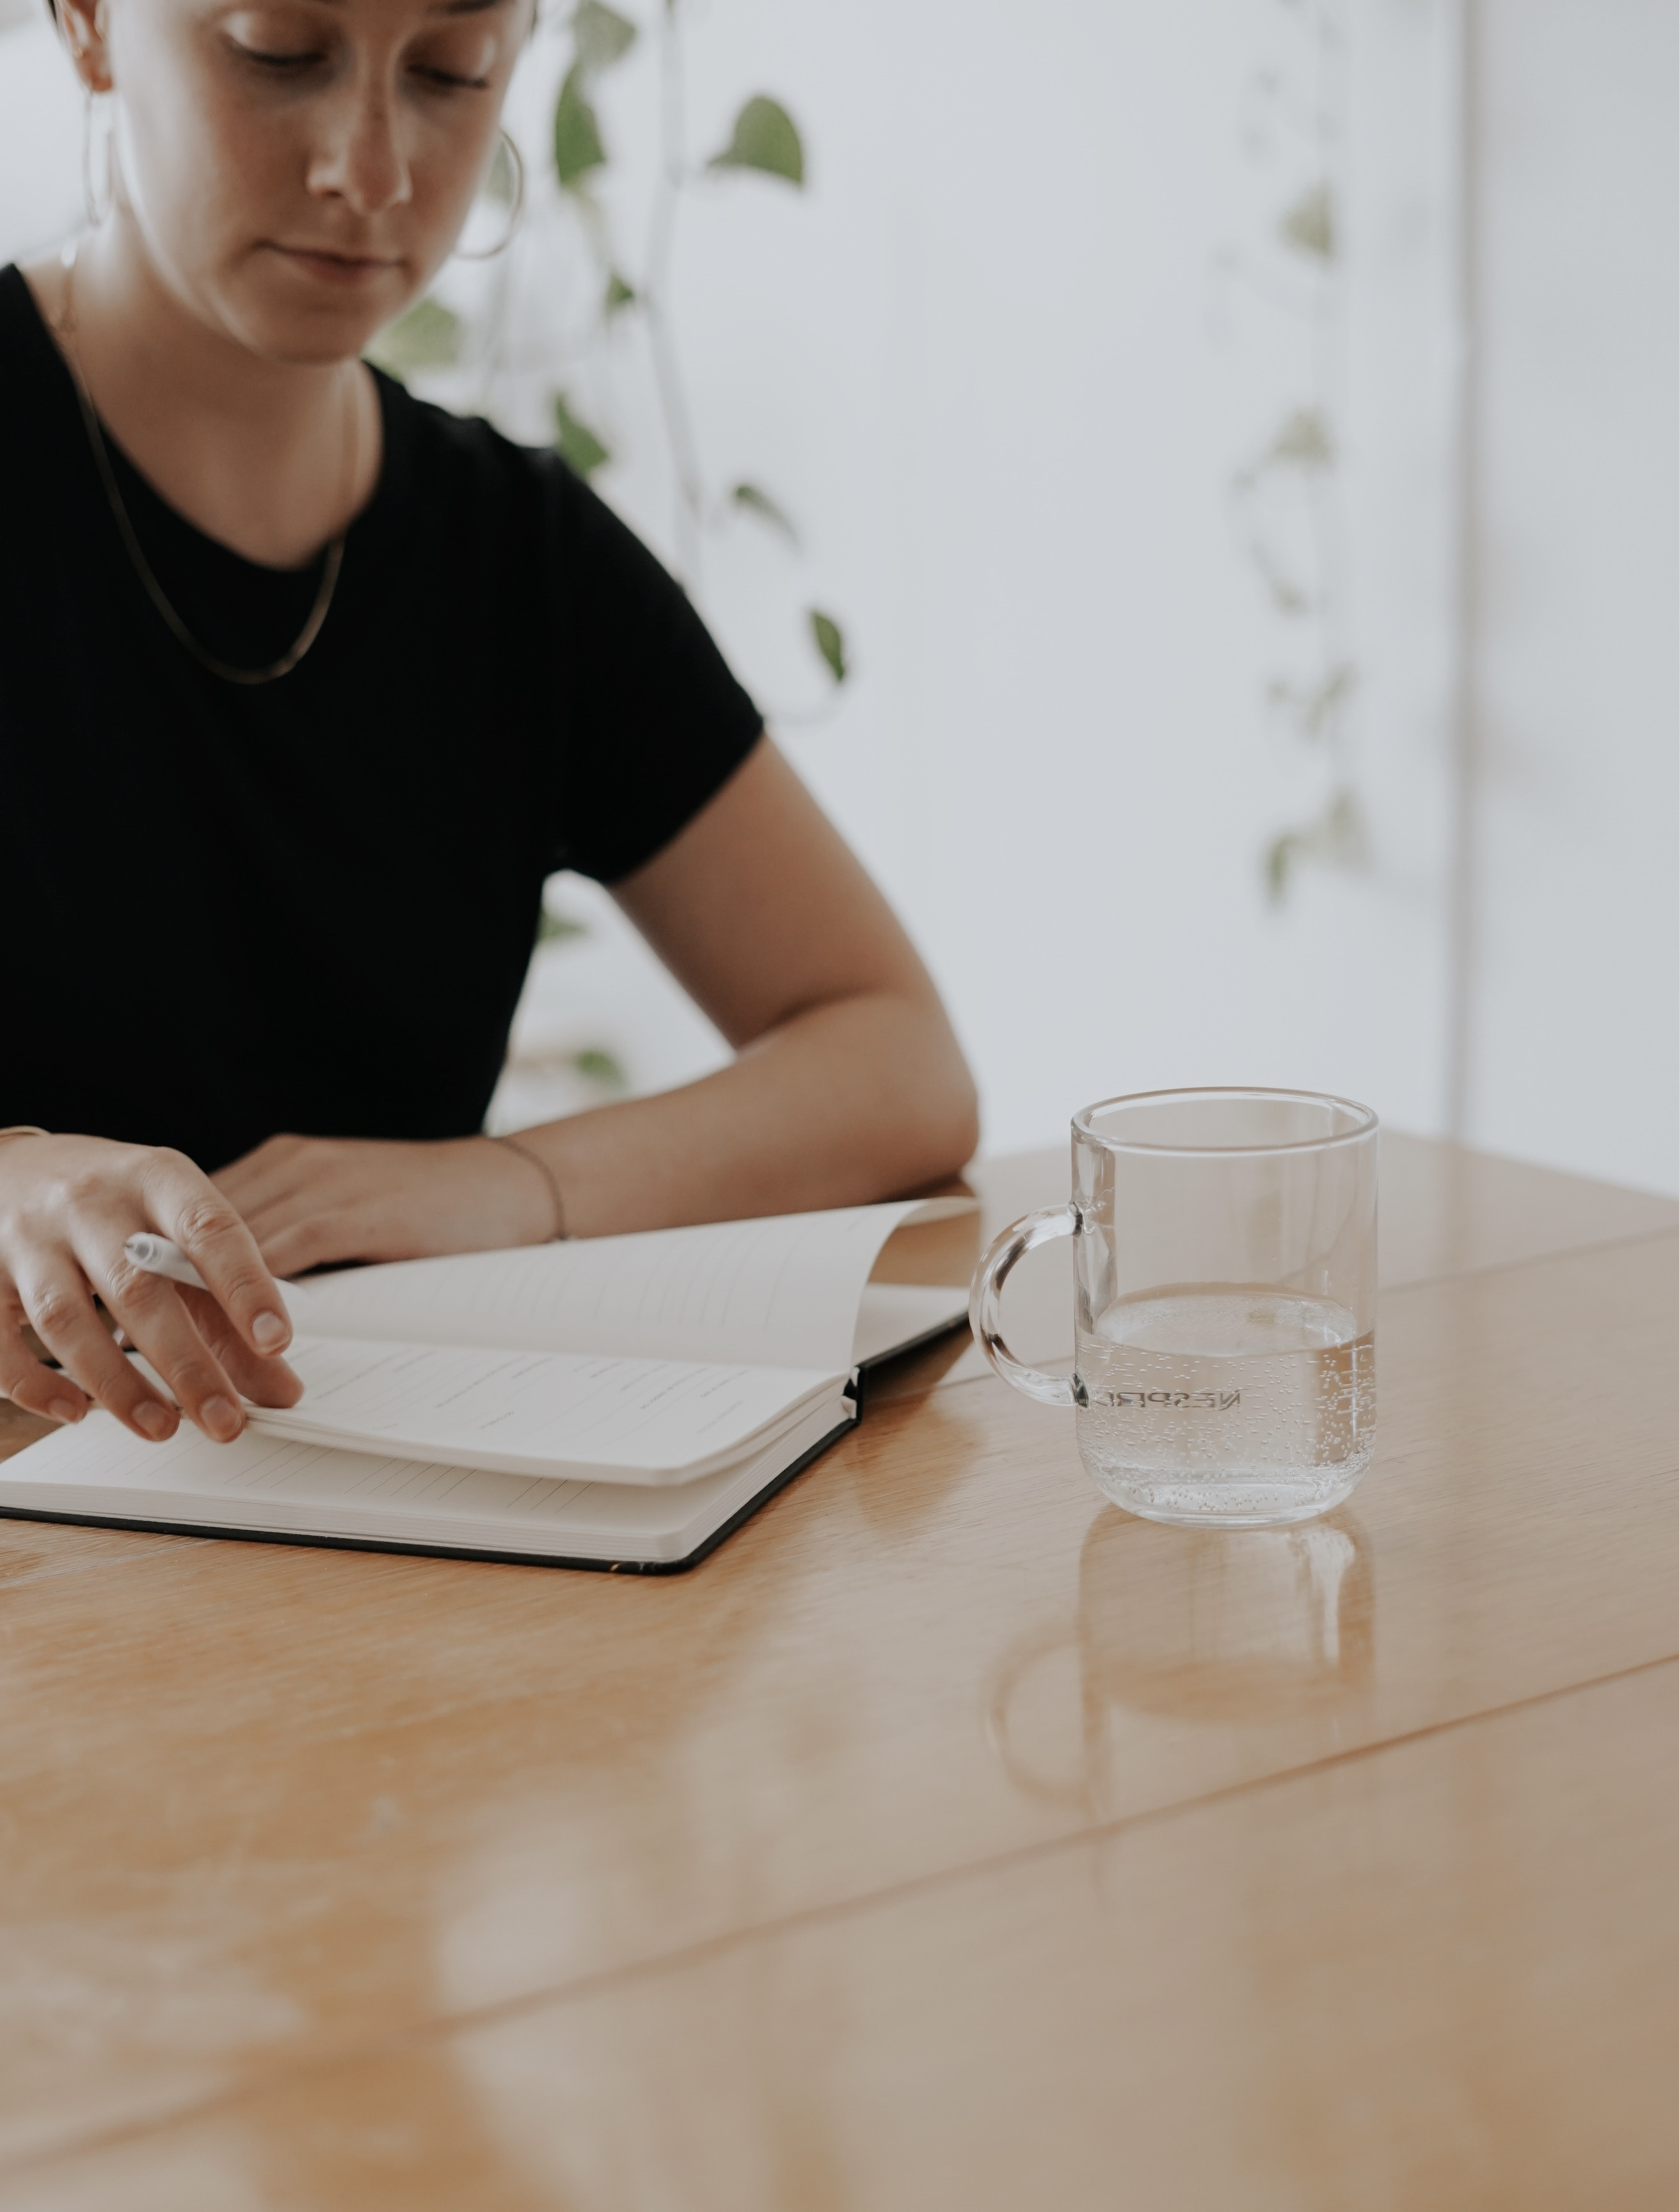 There is a woman in a black t-shirt who is sat at a table with a clear mud of water. She has a notebook open and is holding a pen.